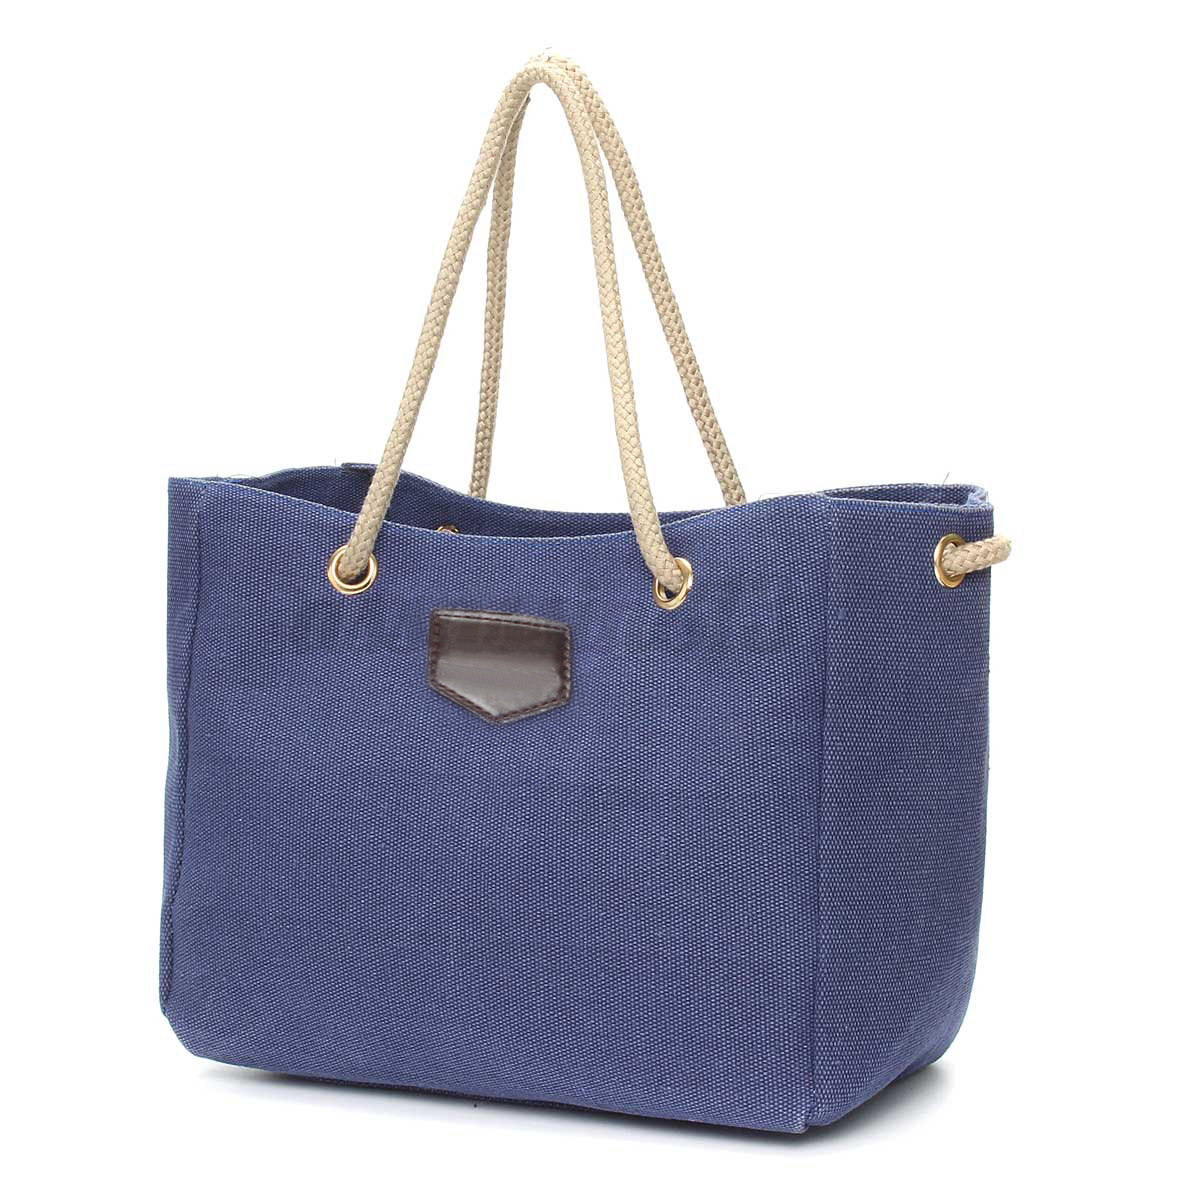 Free shipping on tote bags for women at ditilink.gq Shop a variety of tote-bag styles and sizes from the best brands. Free shipping and returns.